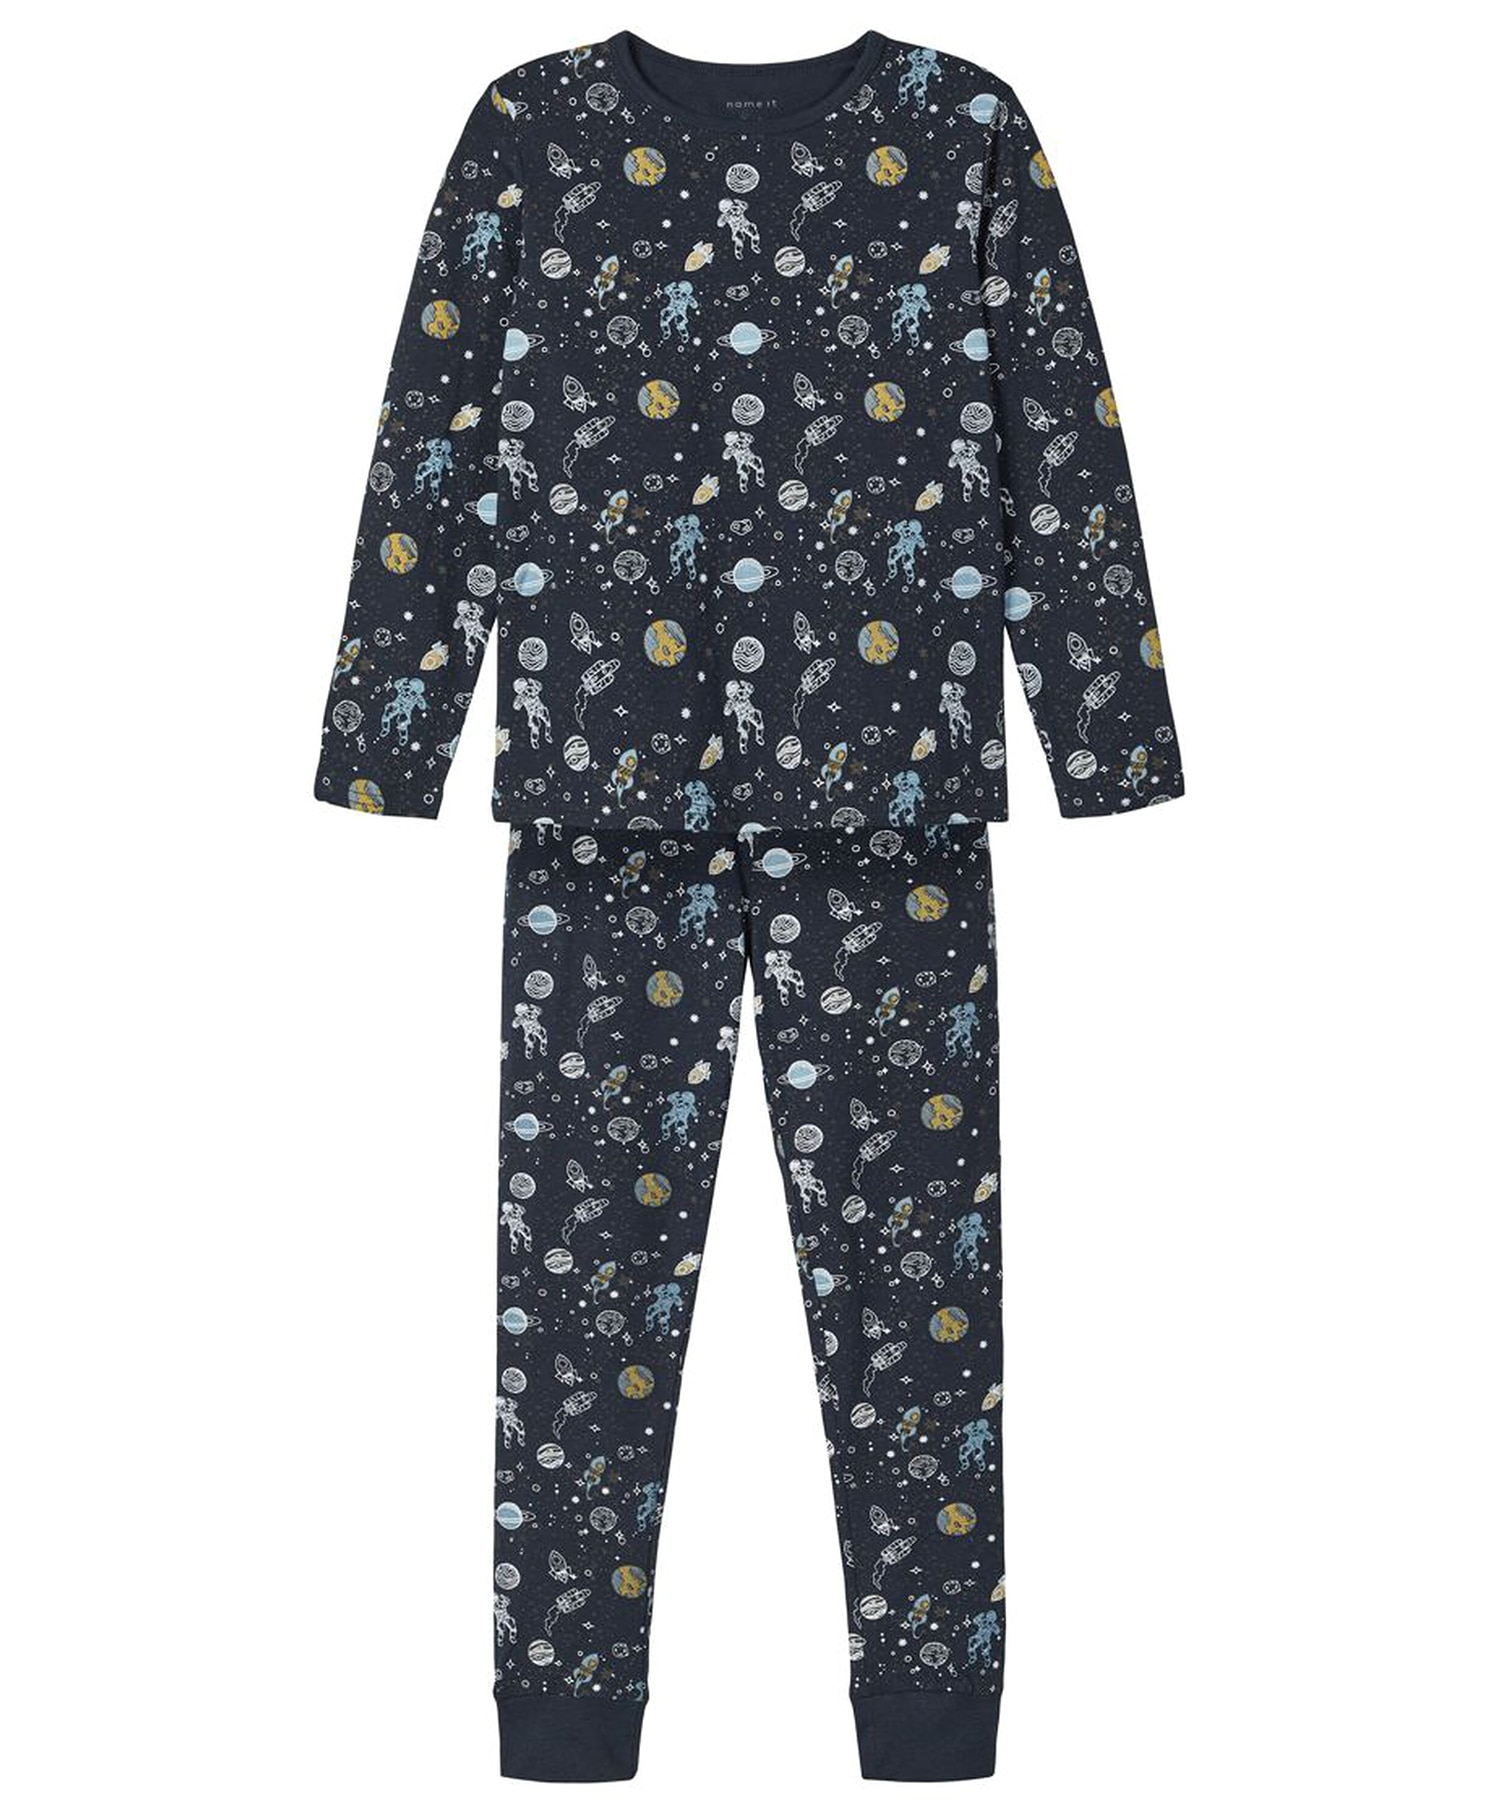 Name it  Space pyjamas sett